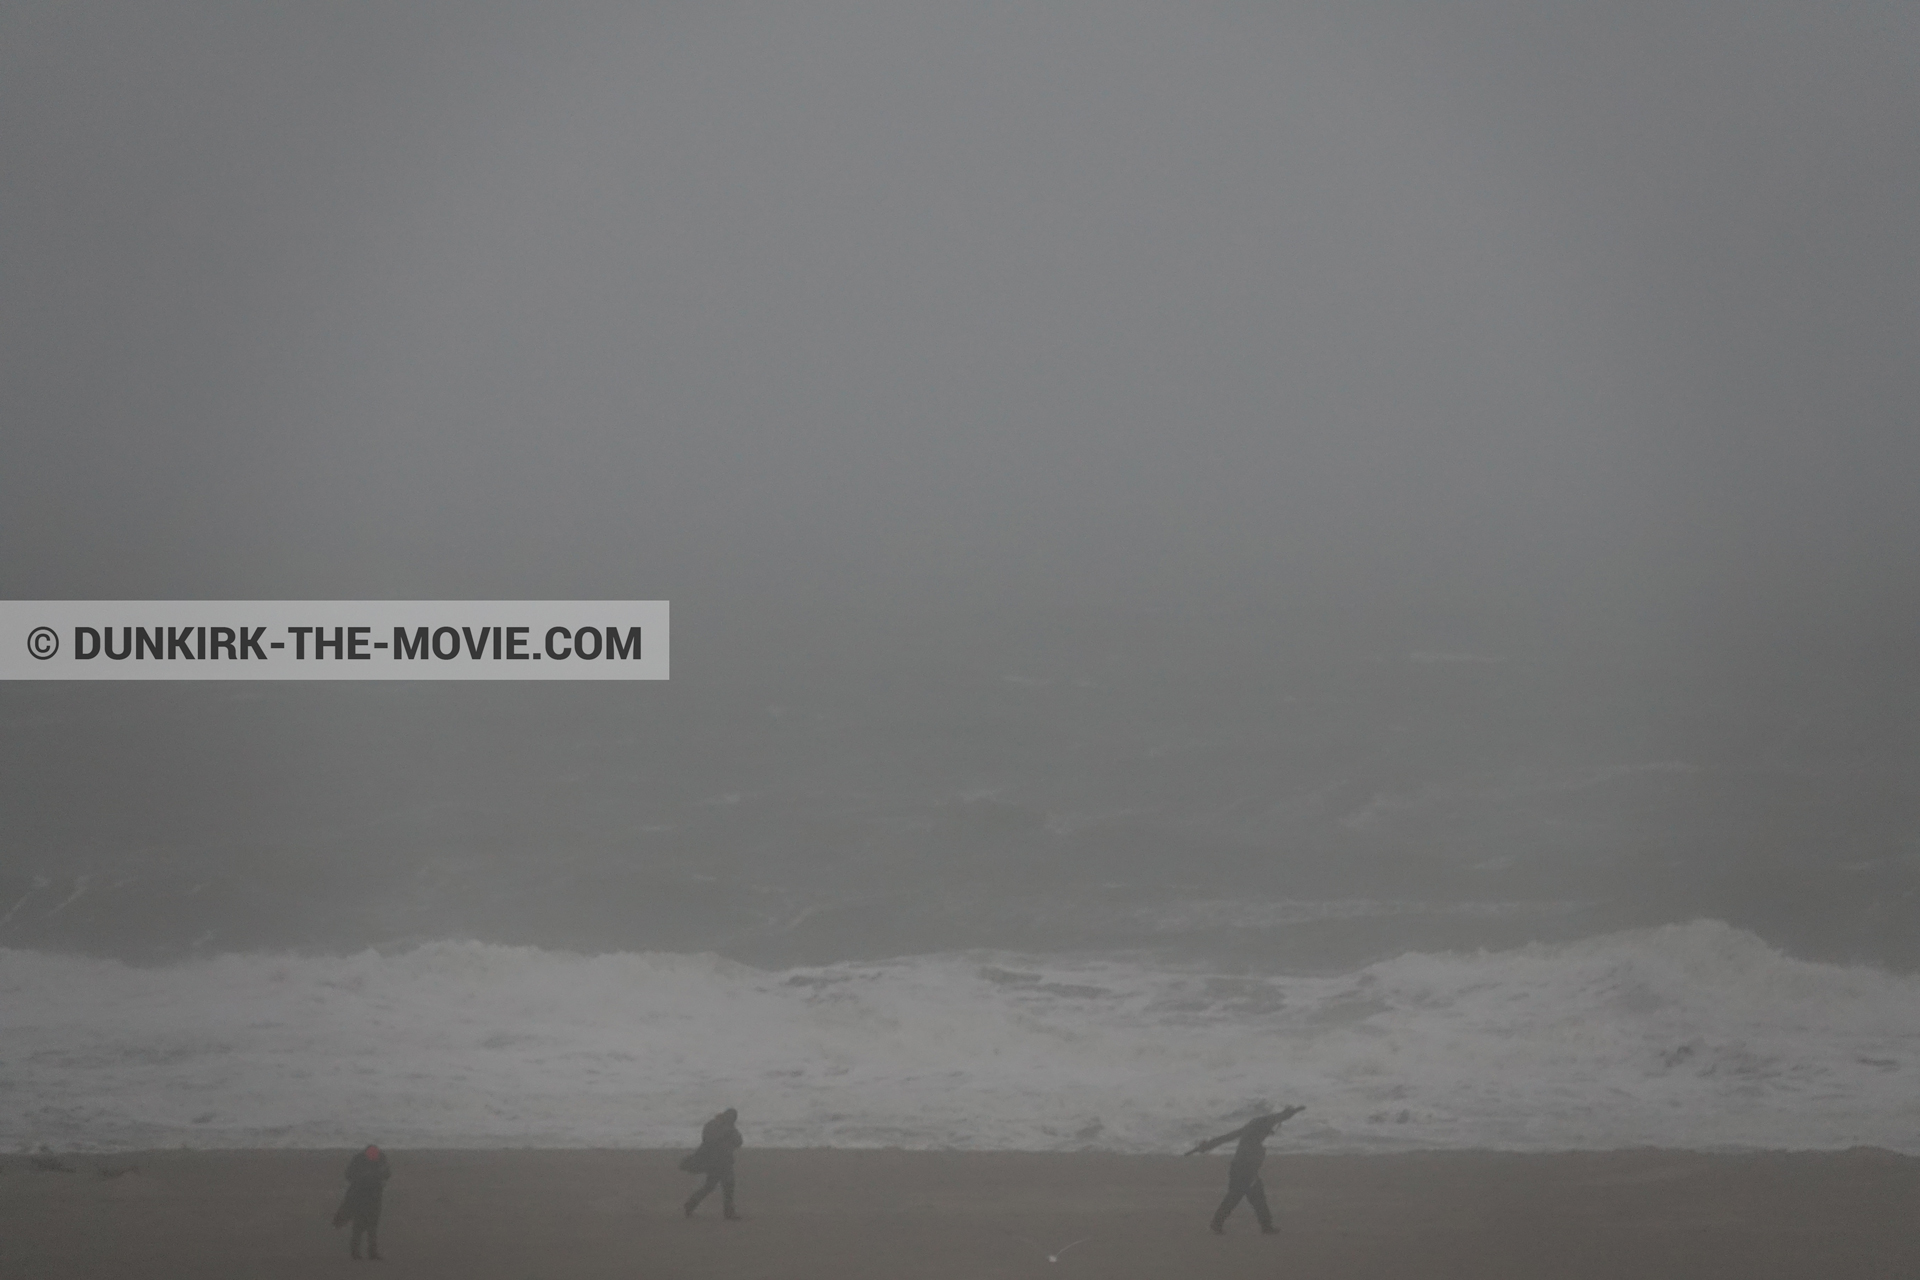 Picture with grey sky, supernumeraries, rough sea, beach,  from behind the scene of the Dunkirk movie by Nolan